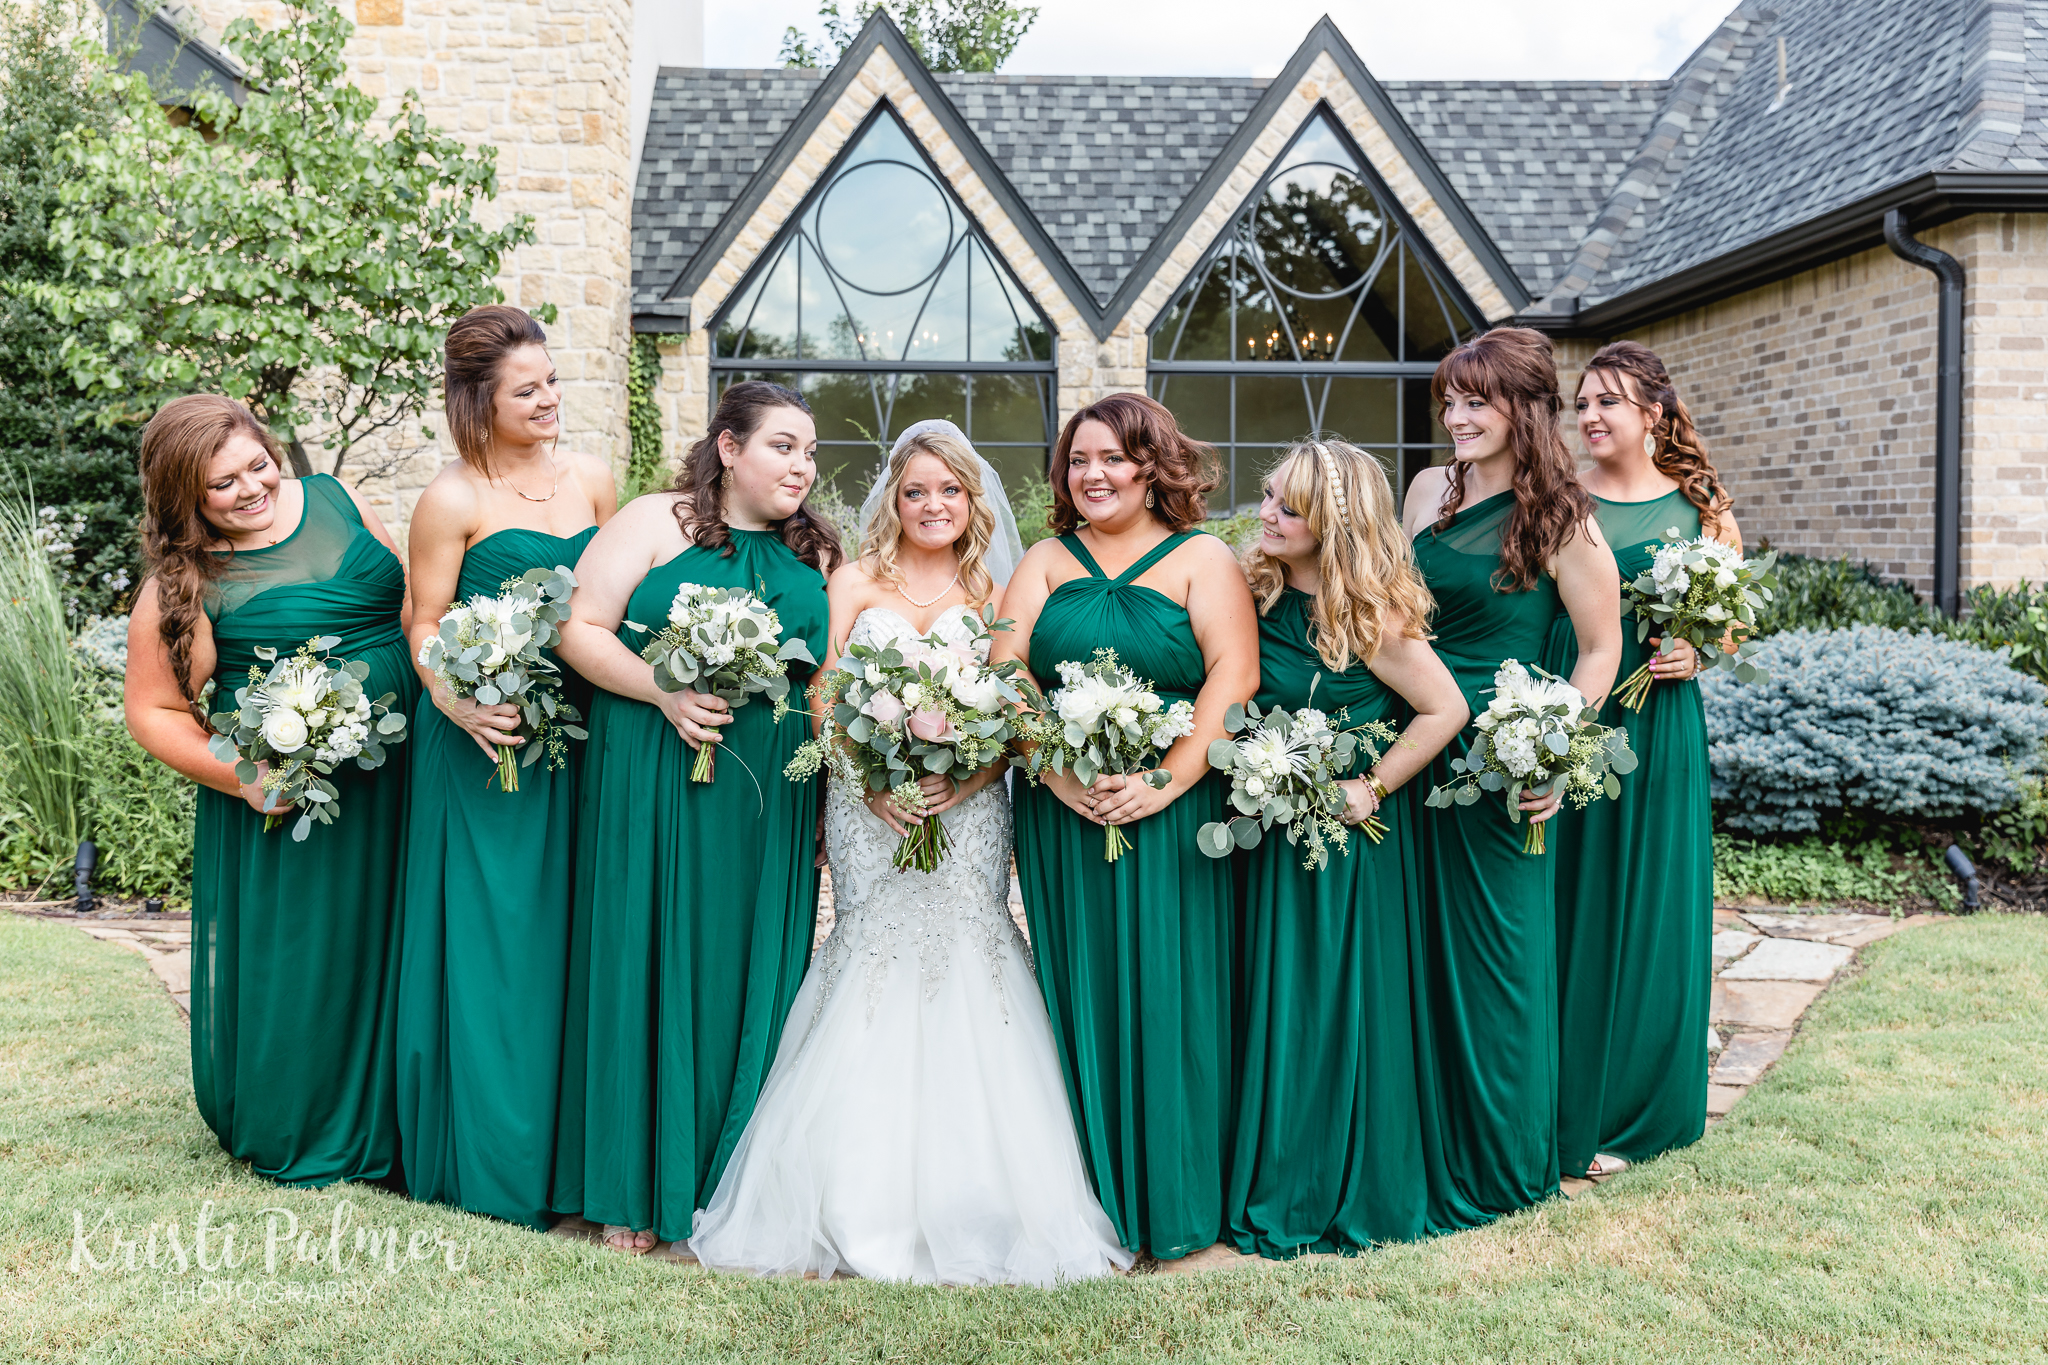 BarretWeddingSM-96.jpg